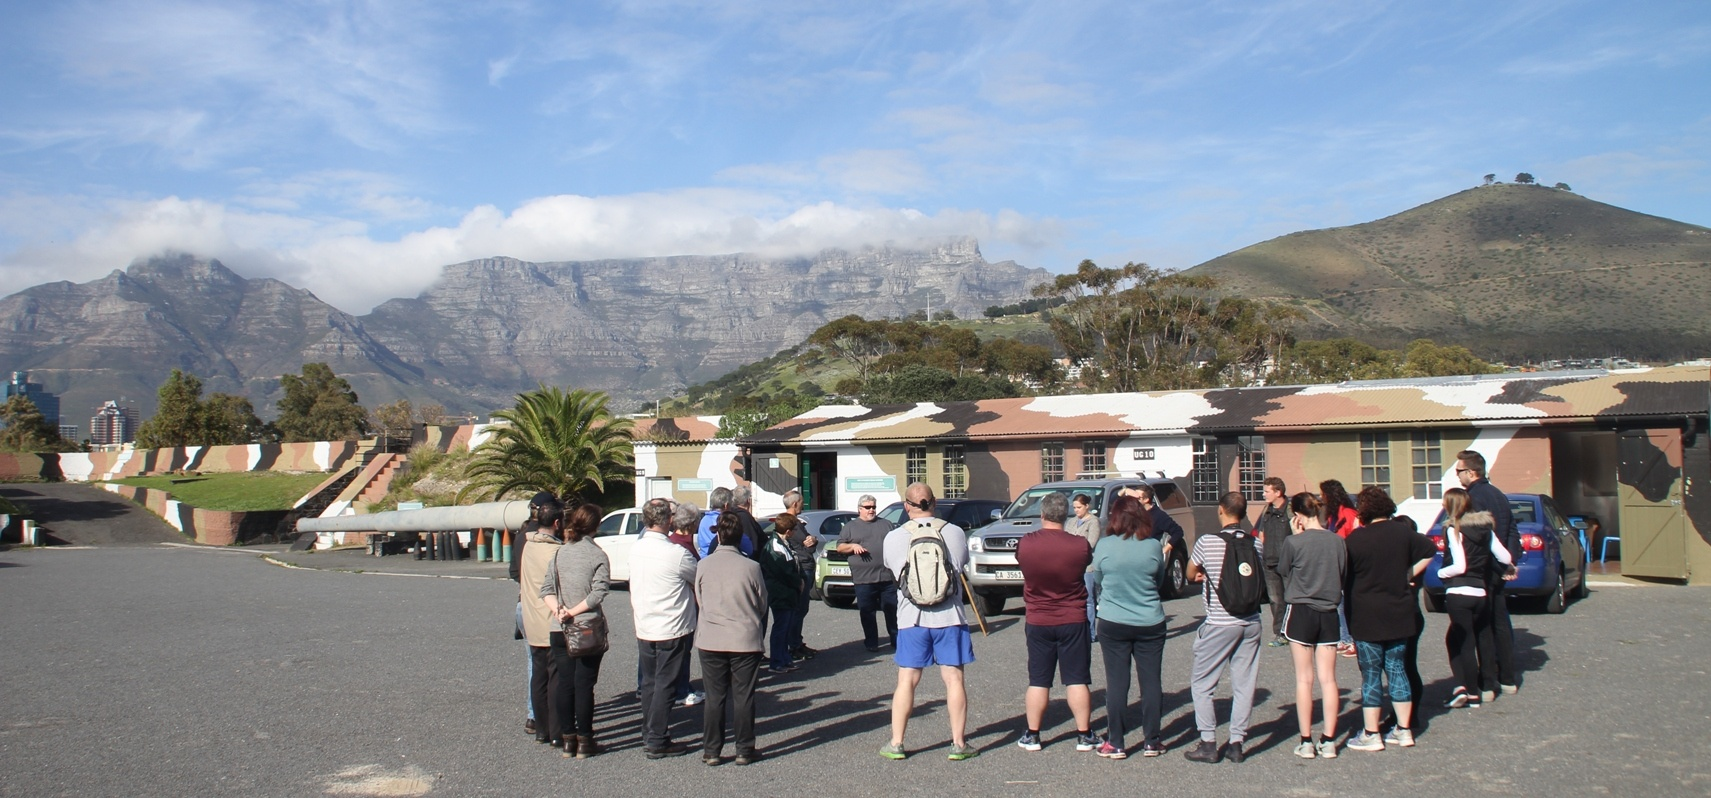 Top Secret Underground Tour of Cape Town-6